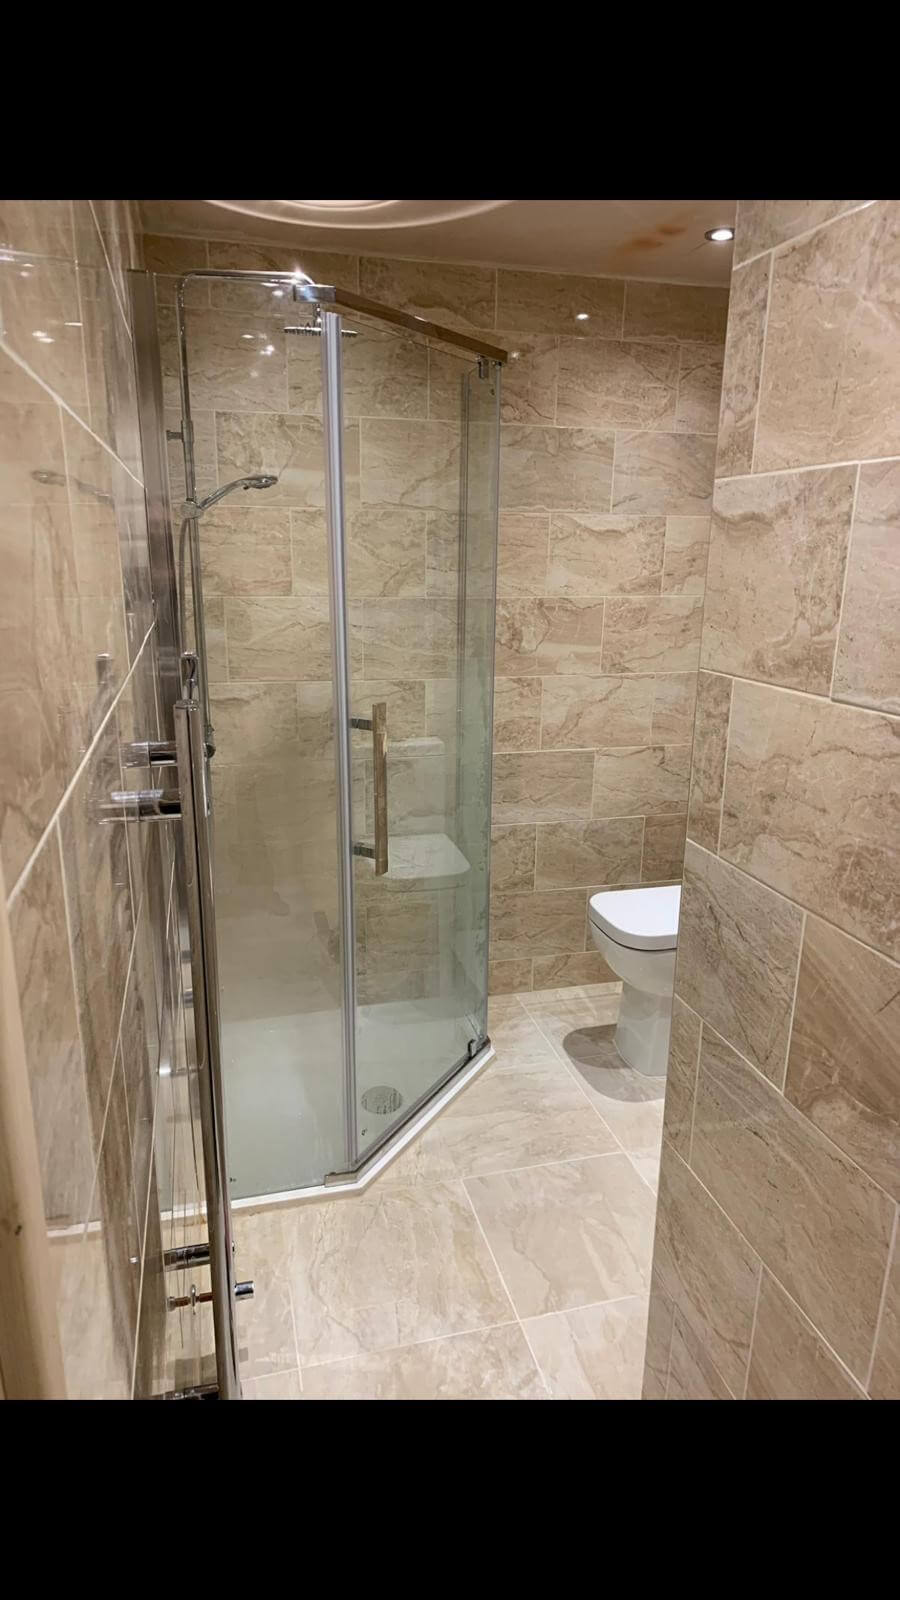 This image shows the new tiling and entrance to a bathroom renovation completed by Celsius Home Improvements in Liverpool.